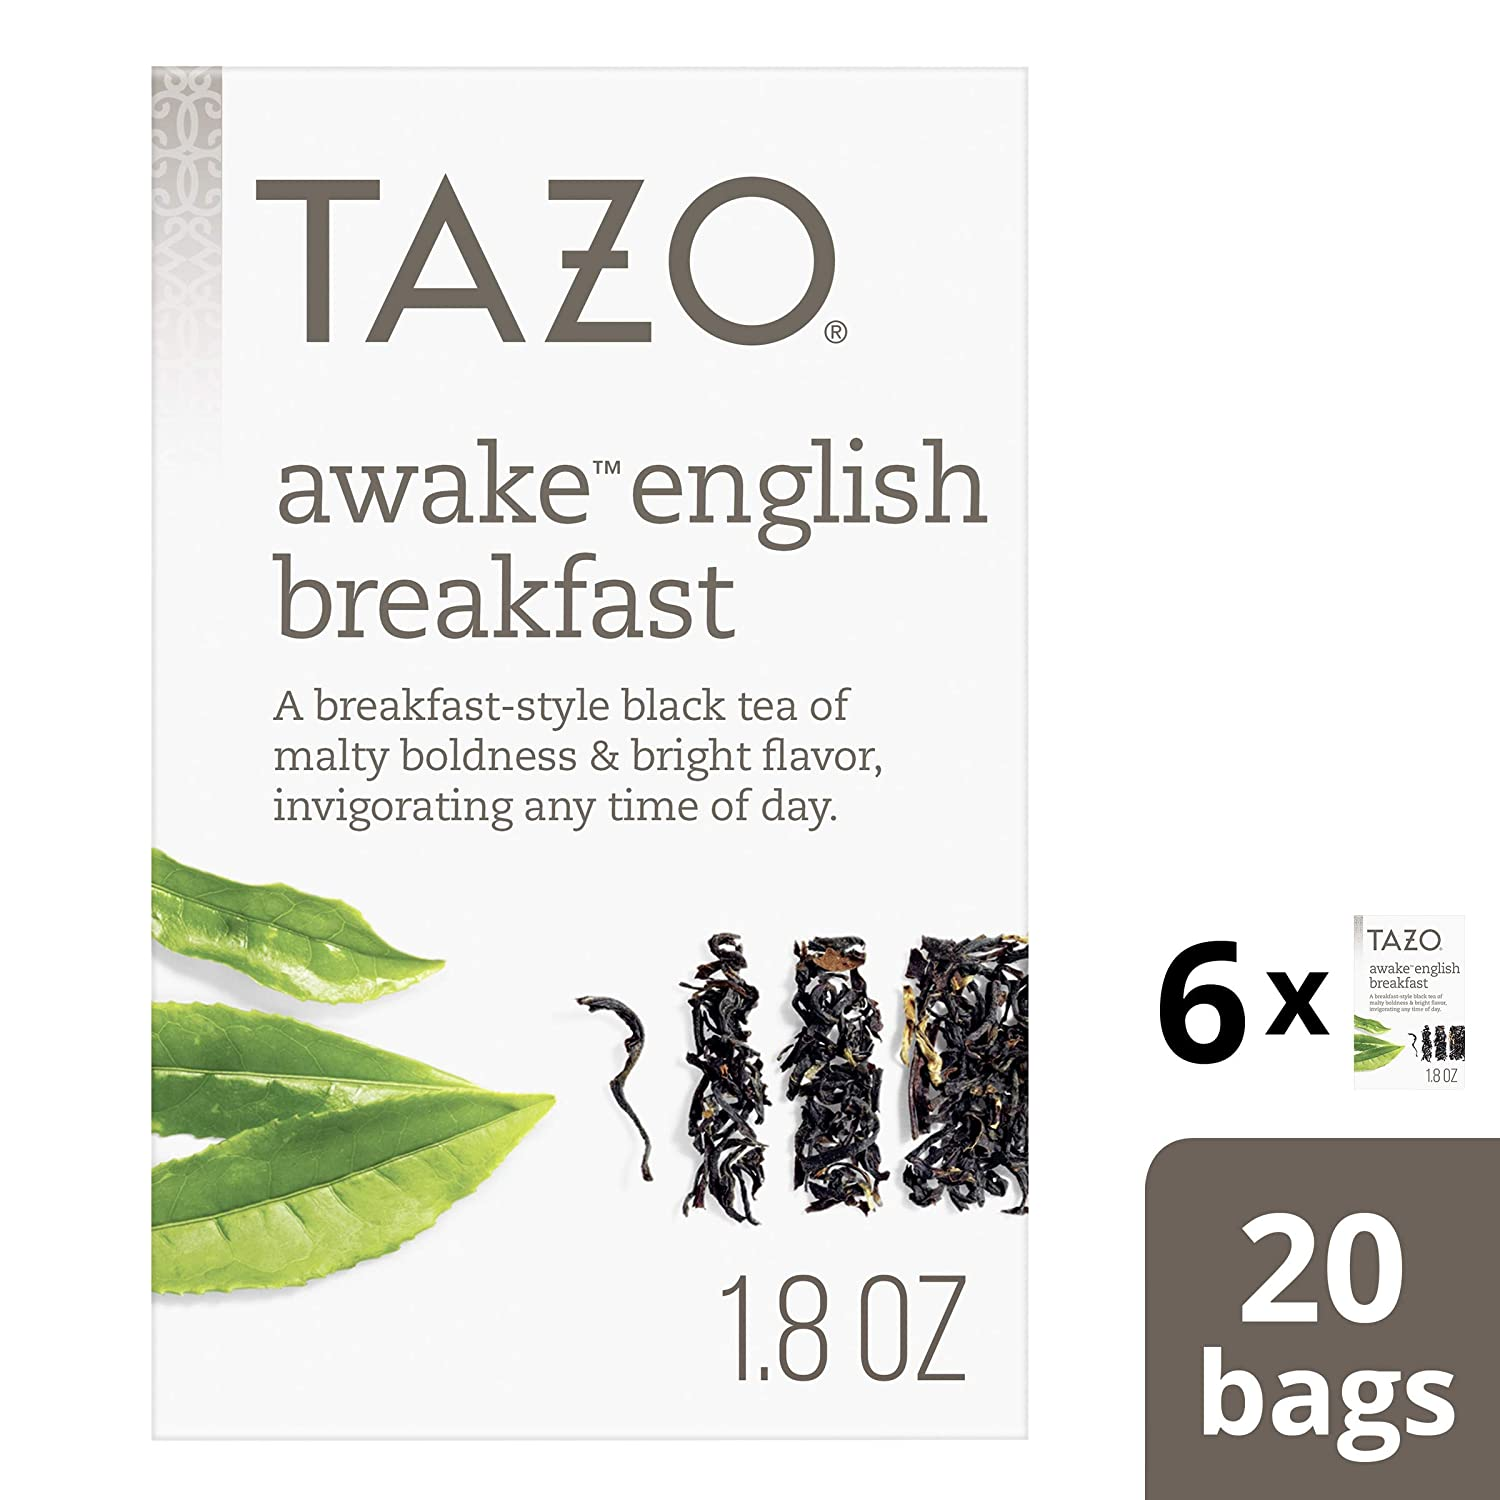 Tazo Awake English Breakfast Tea Bags for a bold and delightful traditional breakfast-style black tea Black Tea high caffeine level 20 count, Pack of 6